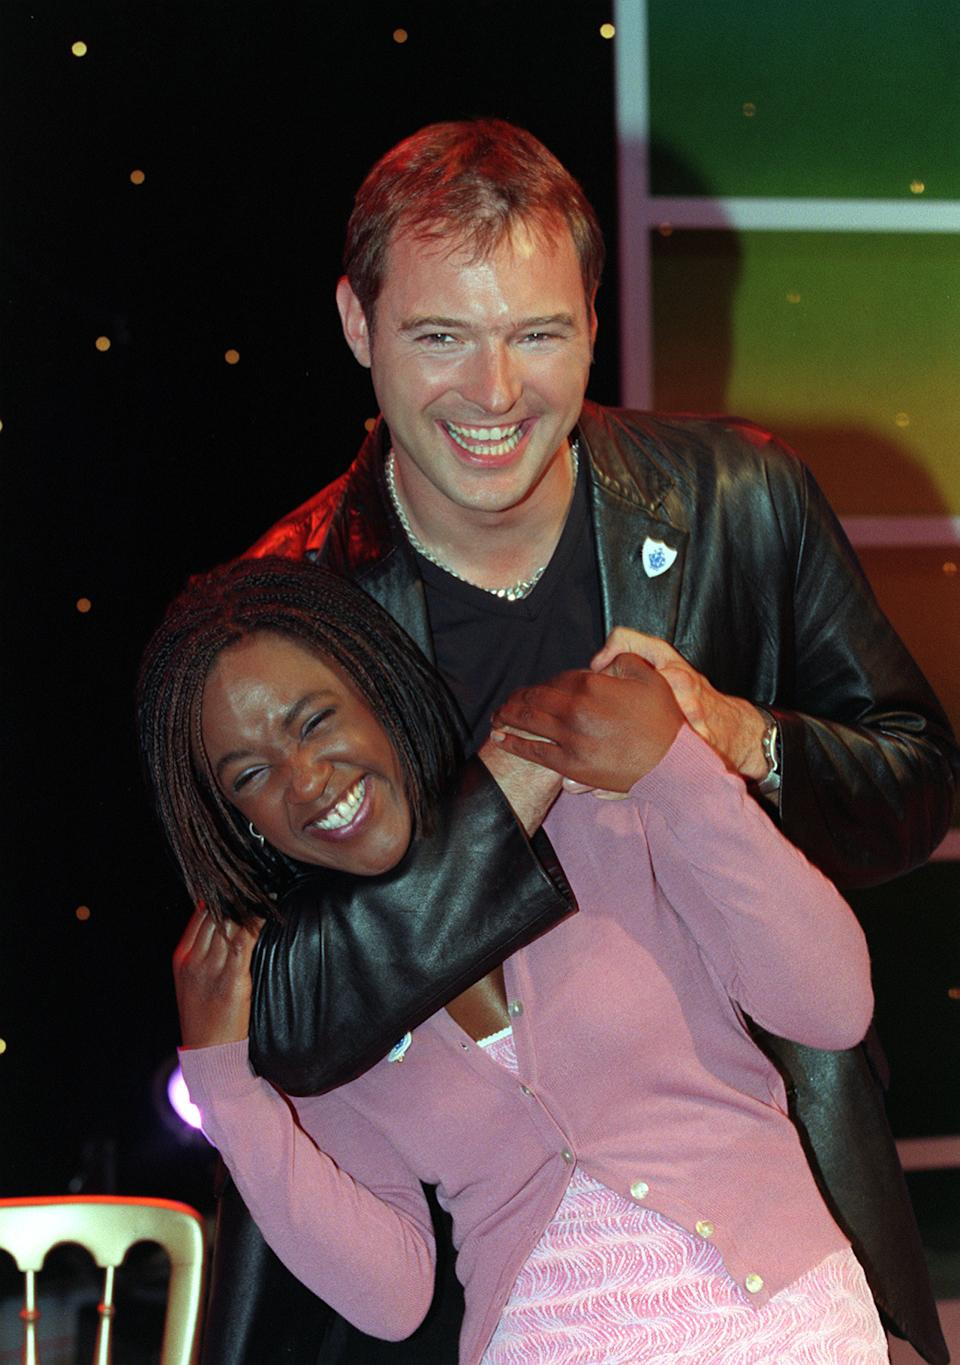 PA NES PHOTO 16/10/98 FORMER BLUE PETER PRESENTERS JOHN LESLIE AND DIANE LOUISE JORDAN IN LONDON TO CELBRATE THE 40TH ANNIVERSARY OFTHE BBC CHILDREN'S PROGRAMME. (Photo by Peter Jordan - PA Images/PA Images via Getty Images)